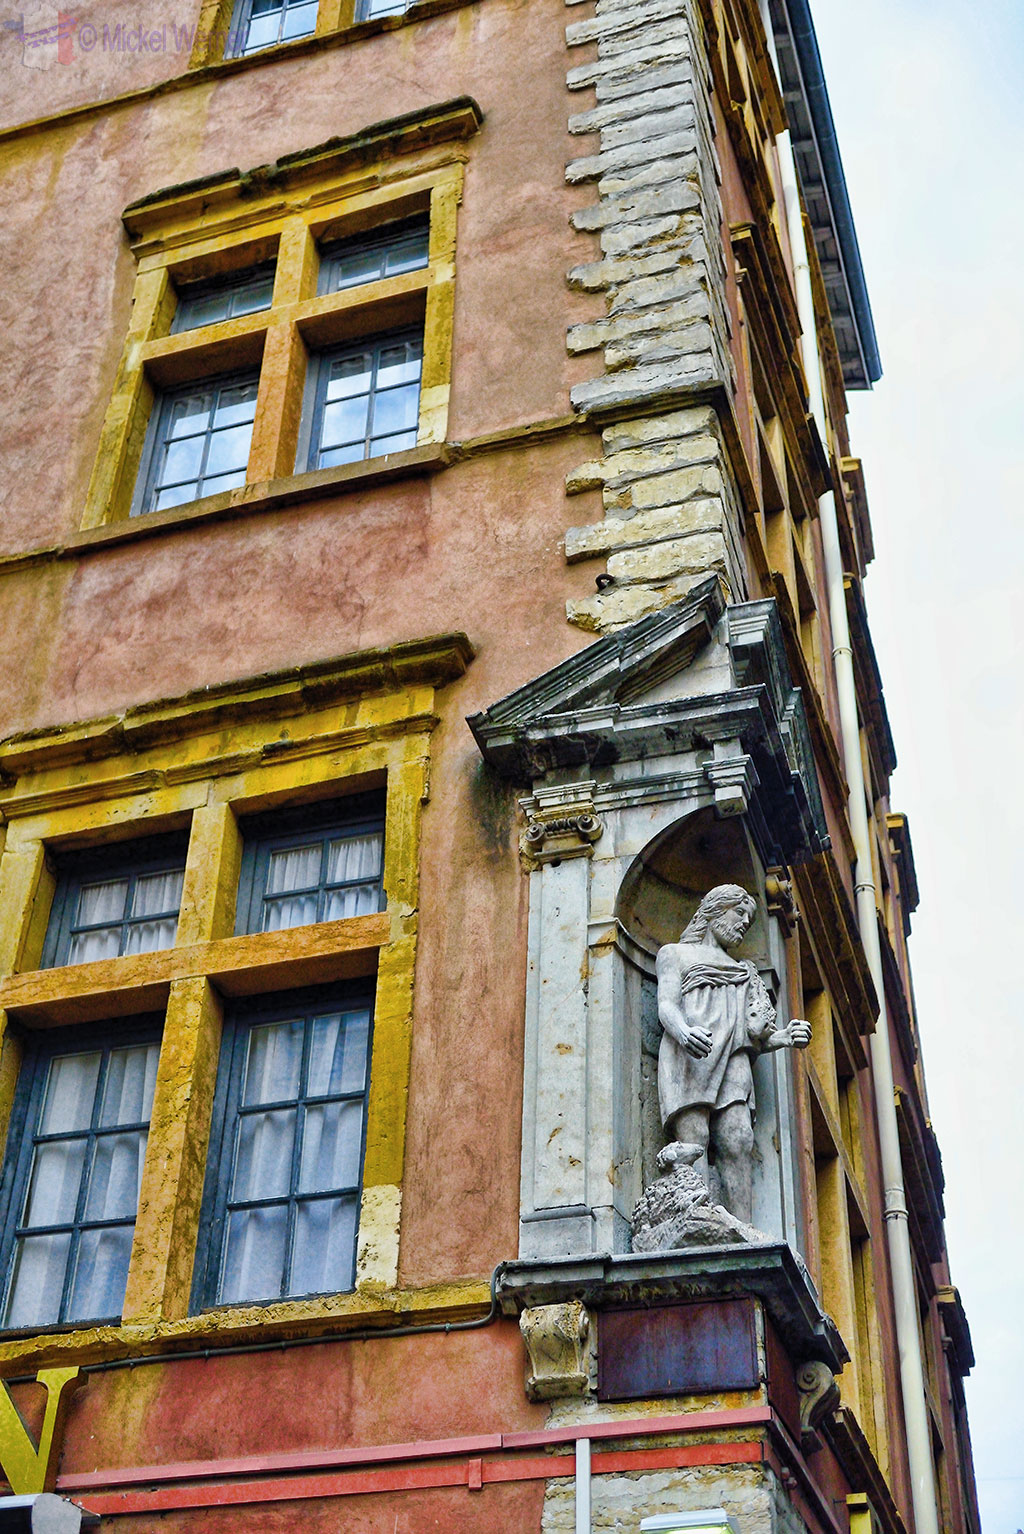 Facades of the old buildings in Vieux Lyon